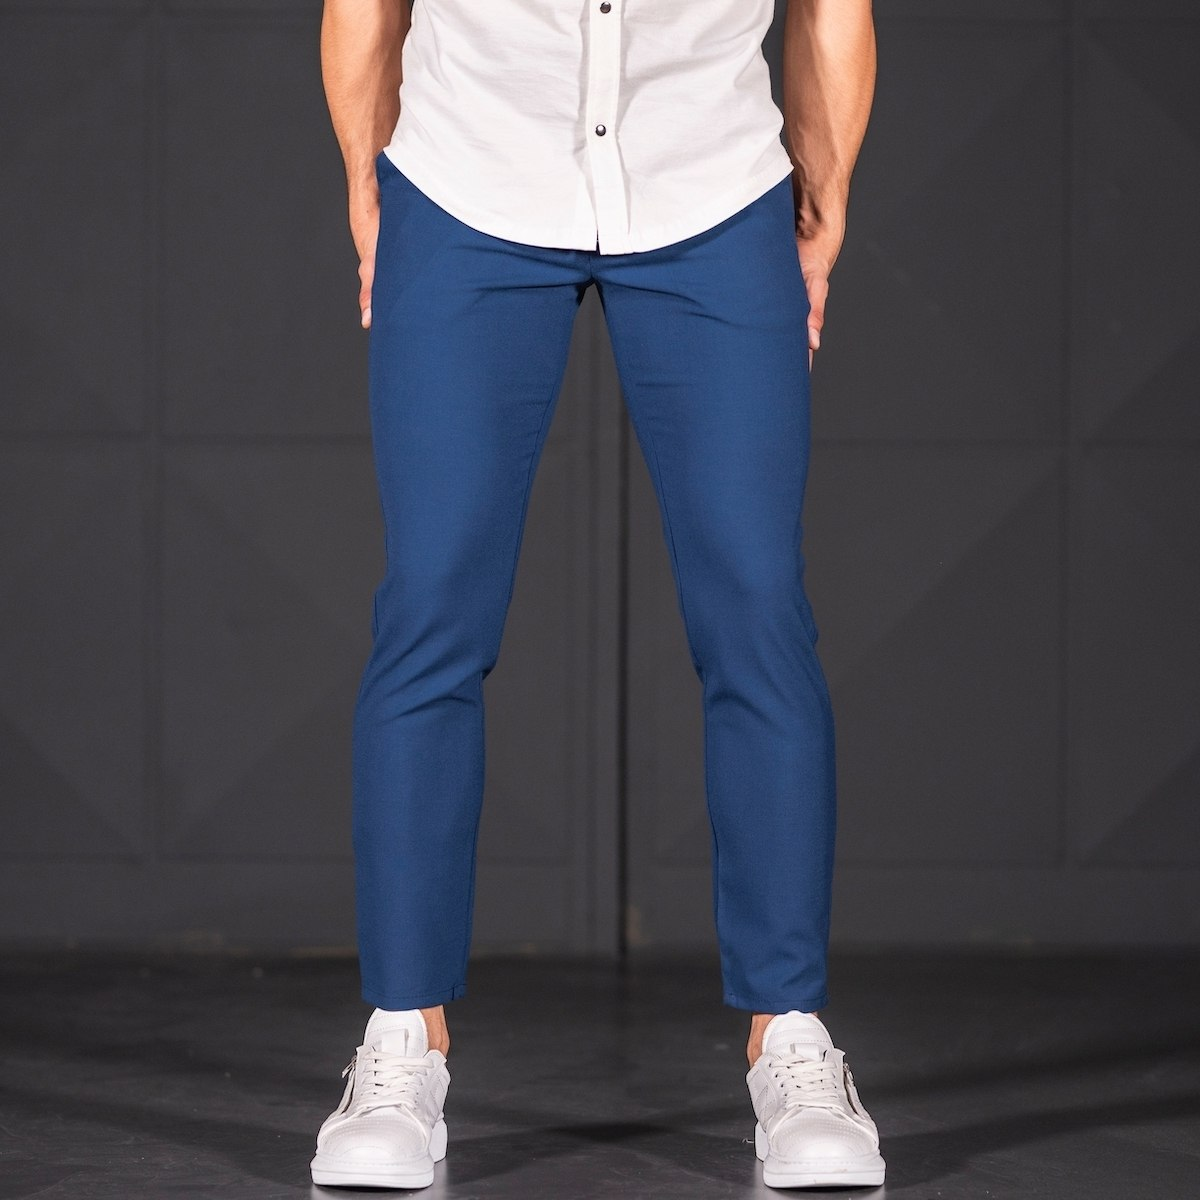 Modern Cut Trousers In Navy Blue Mv Premium Brand - 1